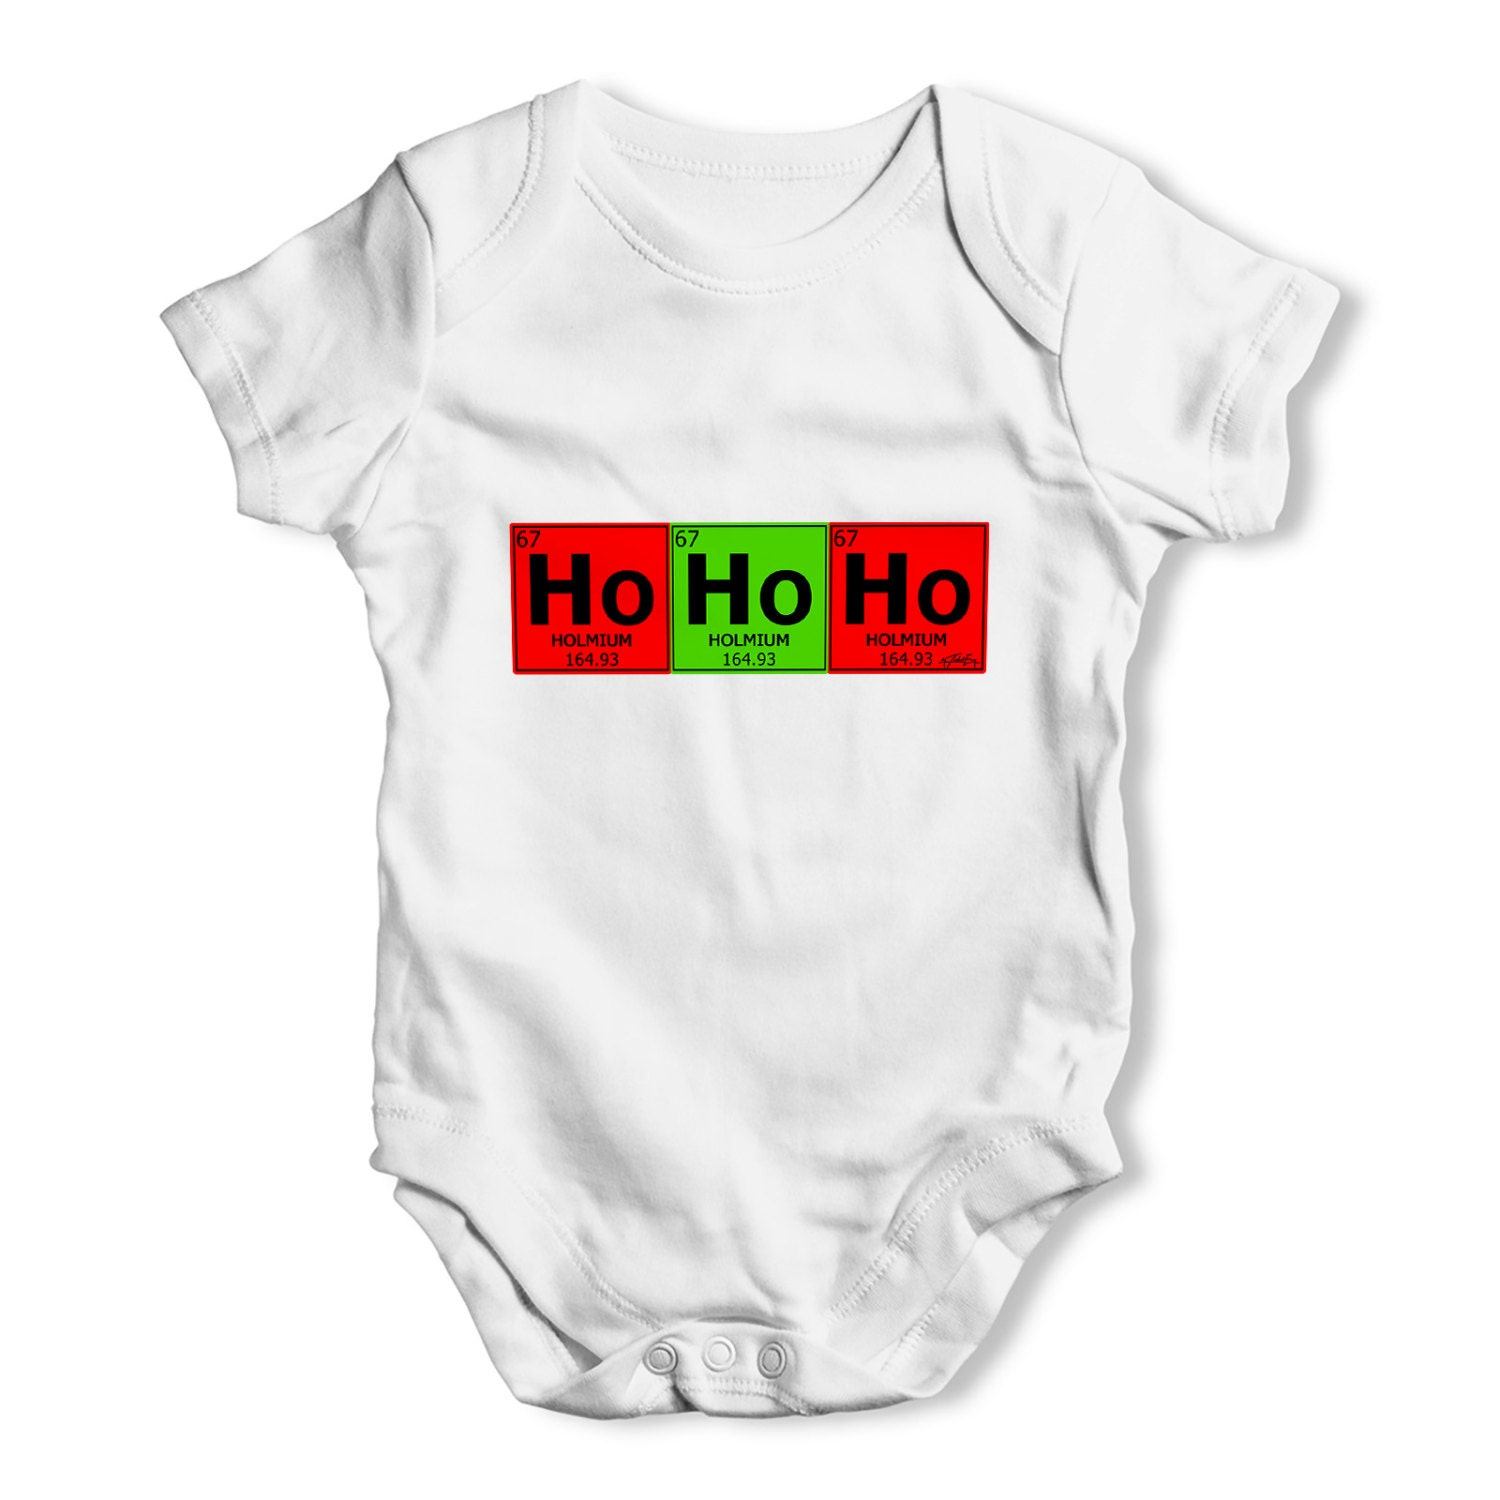 Periodic table ho ho ho baby unisex funny baby grow bodysuit periodic table ho ho ho baby unisex funny baby grow bodysuit gamestrikefo Gallery